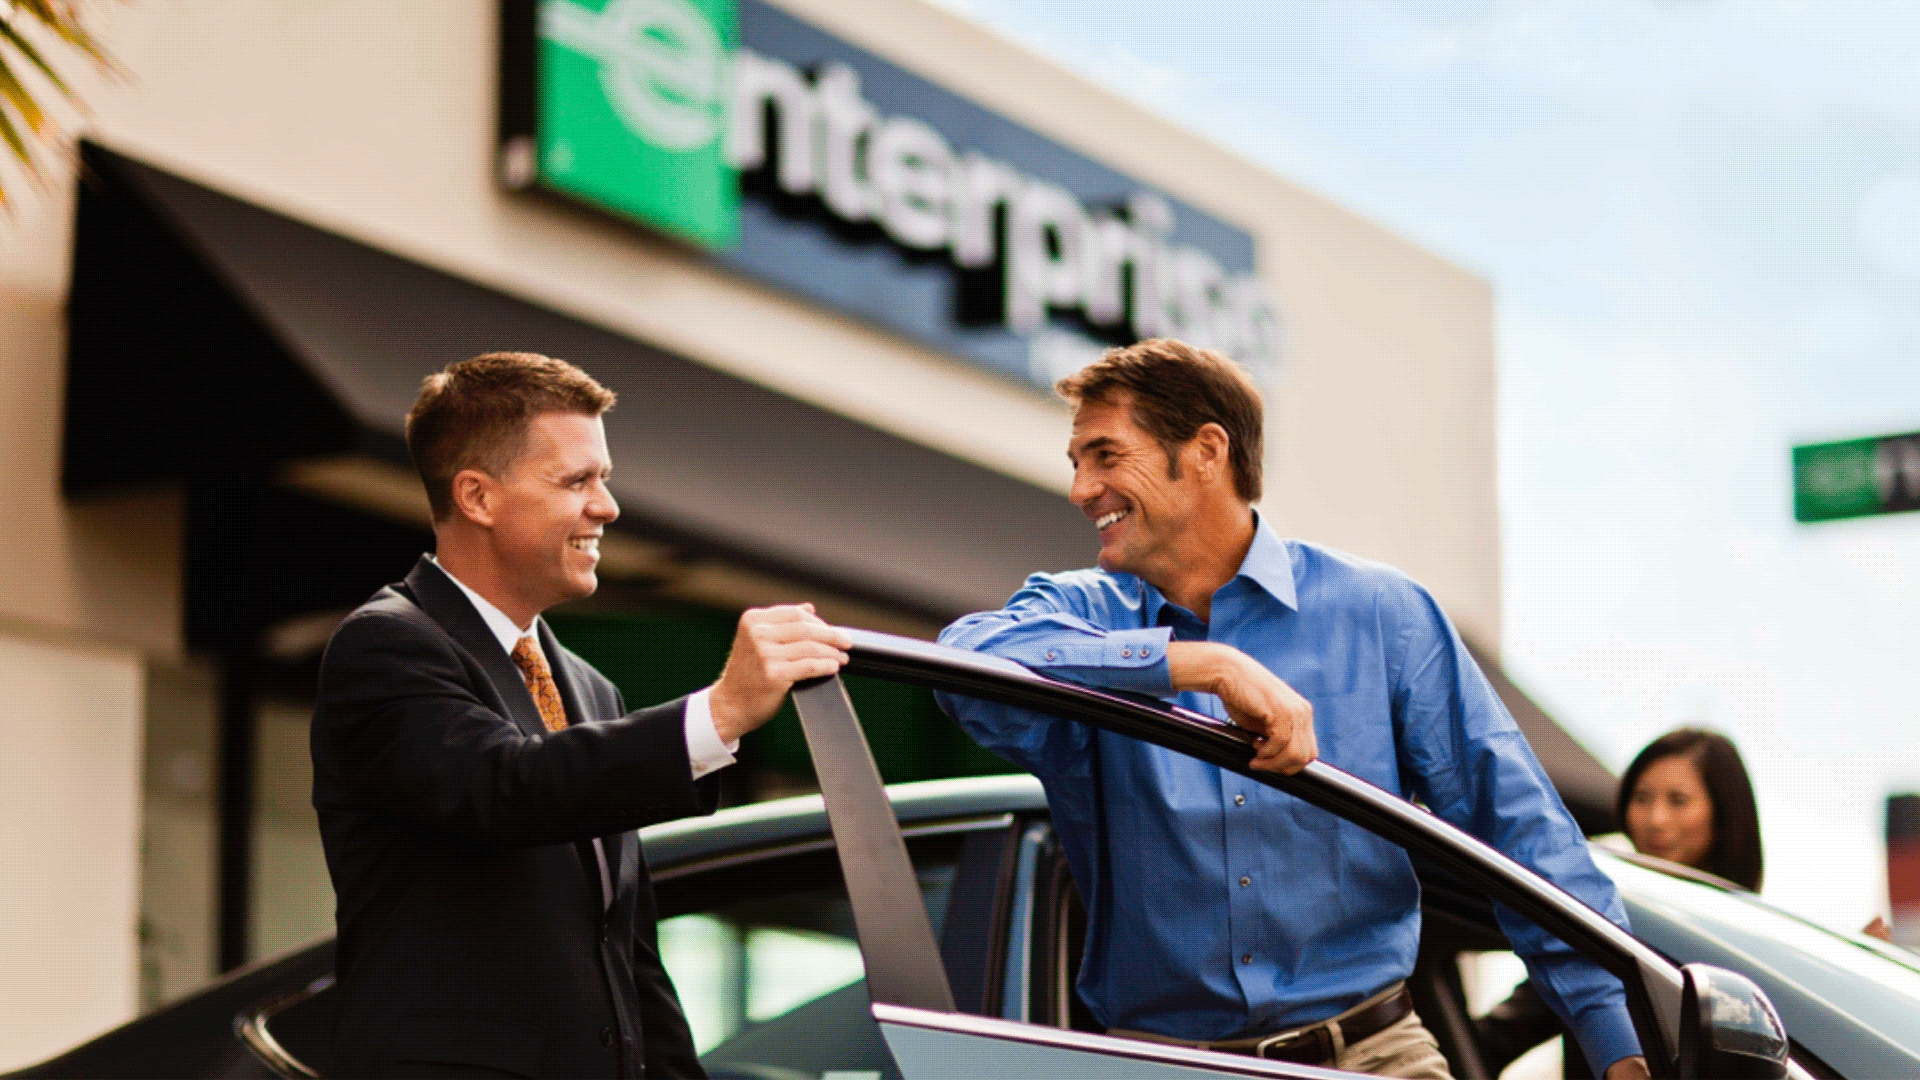 Car Hire from Enterprise